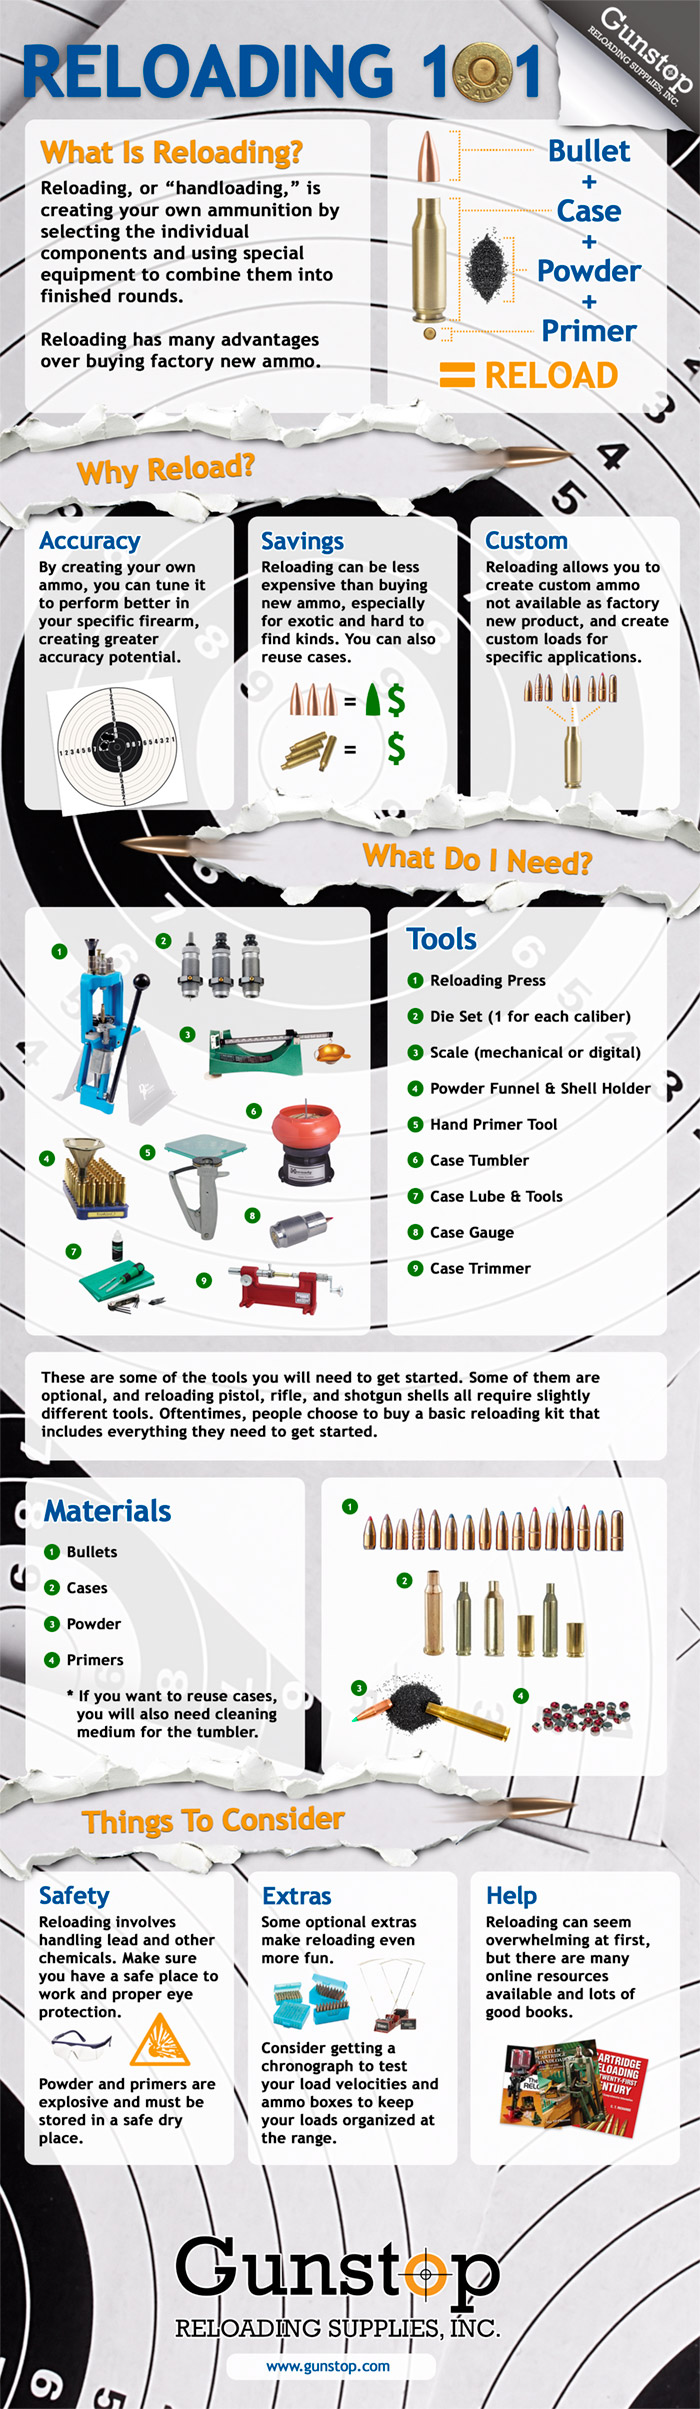 Reloading 101: An Infographic